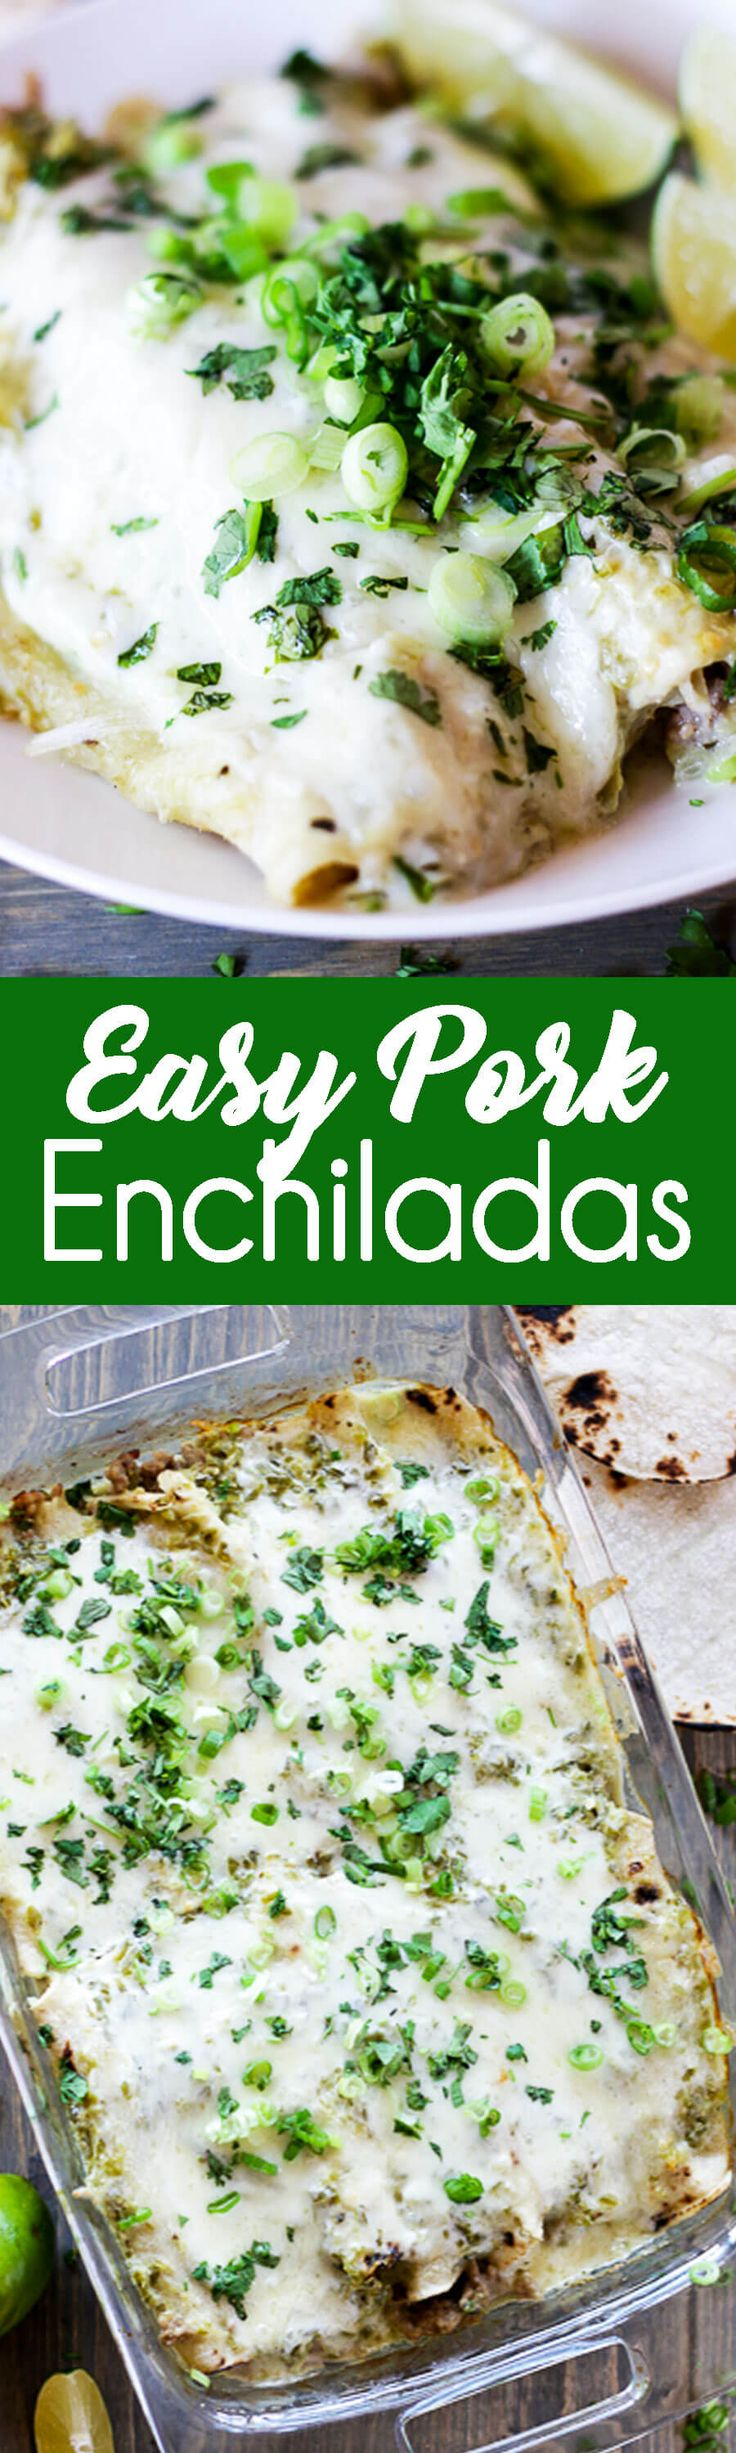 Easy Pork Enchiladas, delicious and easy to make! We love these!